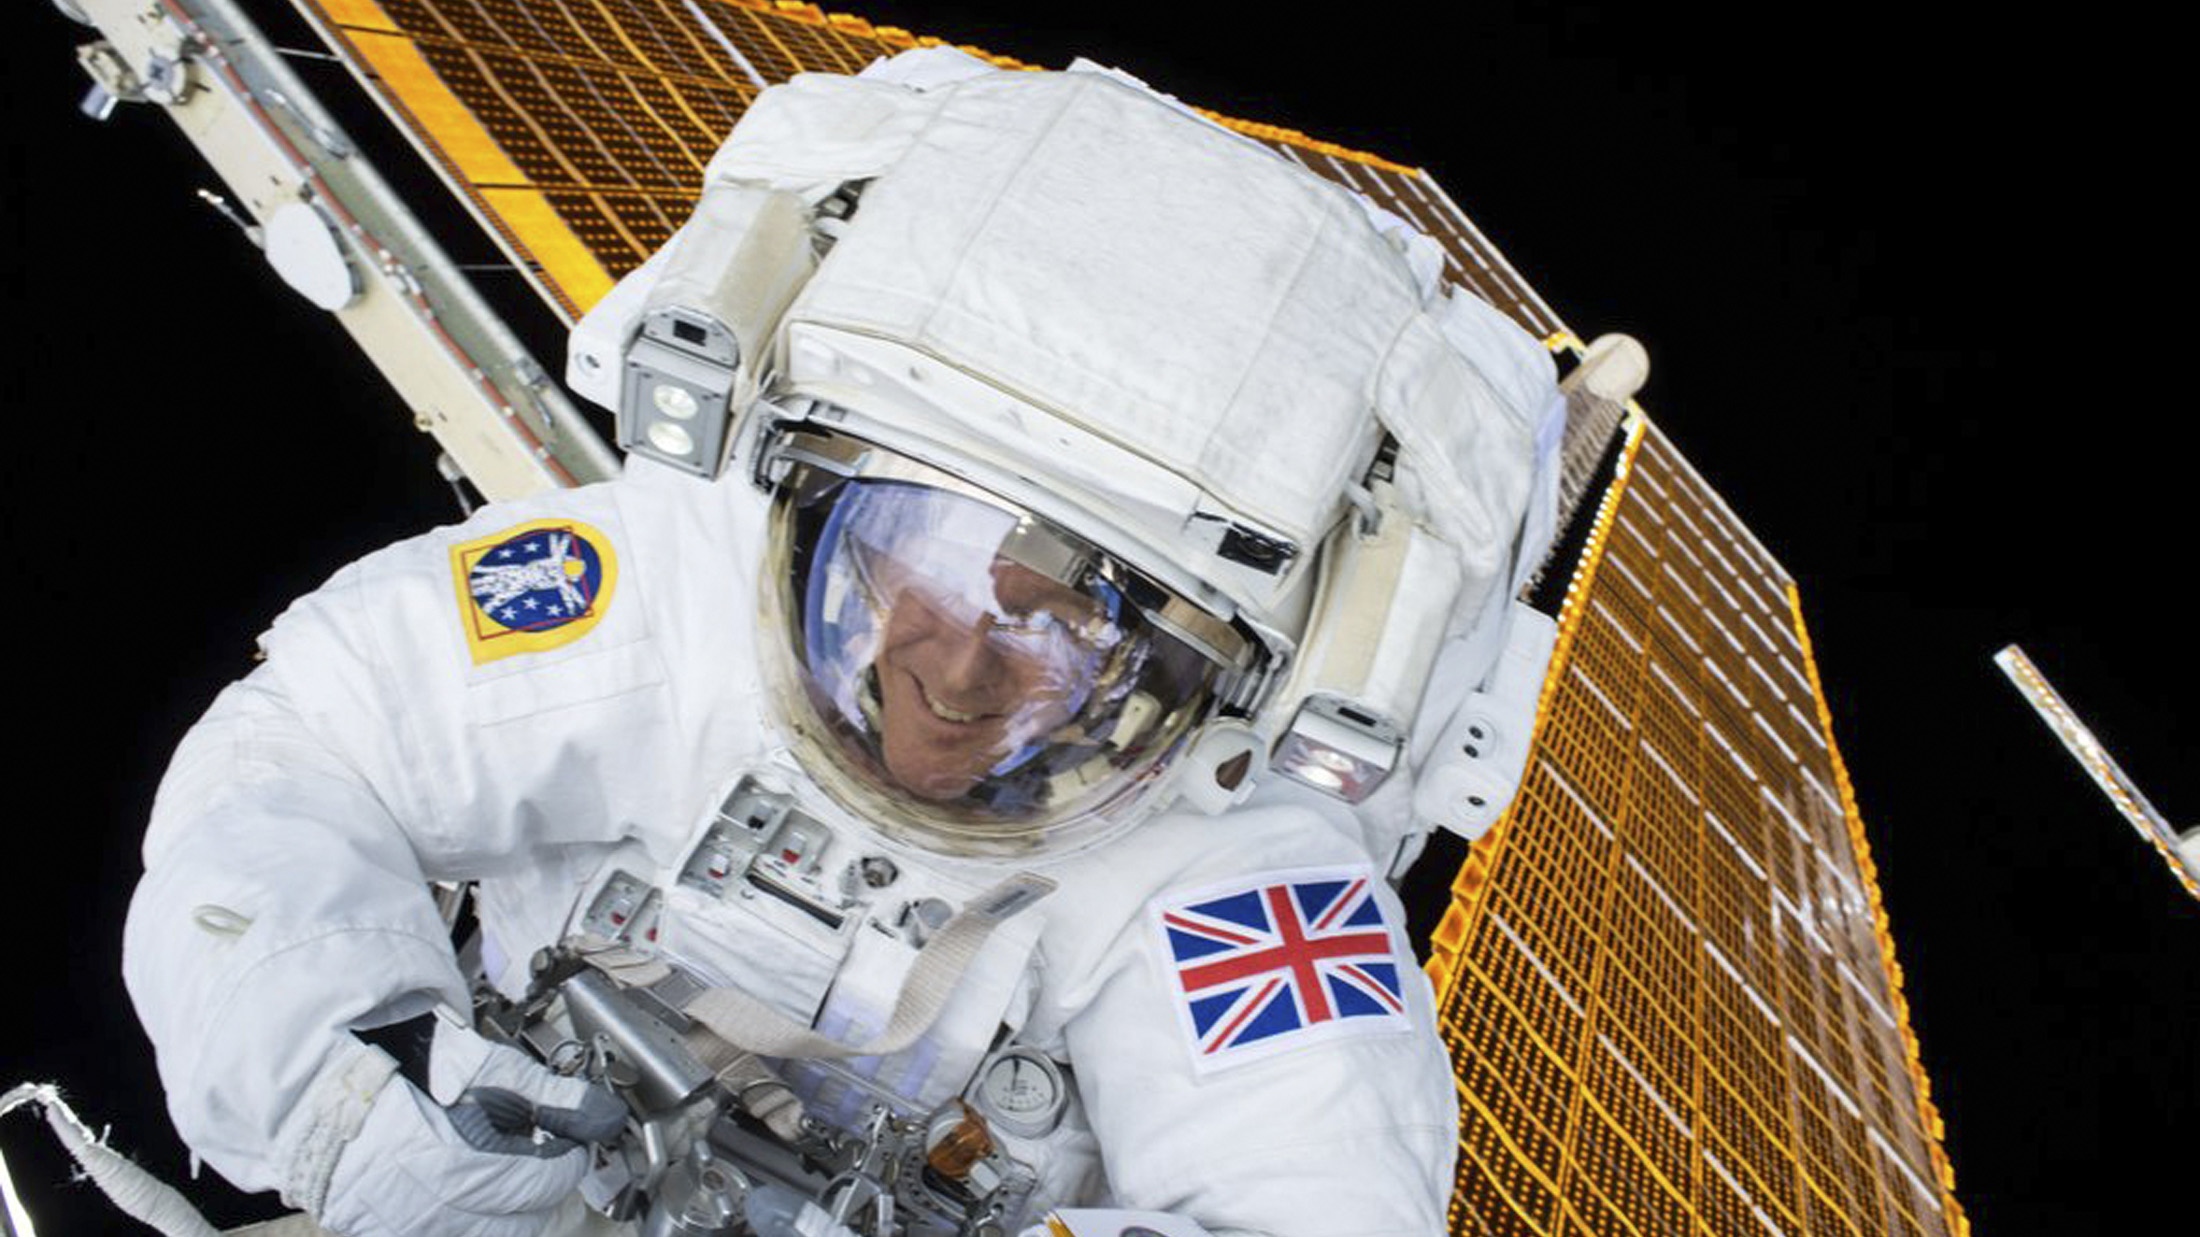 British astronaut Tim Peake is shown during his first spacewalk at the International Space Station in this NASA image tweeted on January 15, 2015. Peake became the first astronaut representing Britain to walk in space when he left the International Space Station (ISS) on Friday to fix a power station problem, generating huge interest back in his homeland.    REUTERS/NASA/Handout via Reuters  FOR EDITORIAL USE ONLY. NOT FOR SALE FOR MARKETING OR ADVERTISING CAMPAIGNS. THIS IMAGE HAS BEEN SUPPLIED BY A THIRD PARTY. IT IS DISTRIBUTED, EXACTLY AS RECEIVED BY REUTERS, AS A SERVICE TO CLIENTS - RTX22LT1